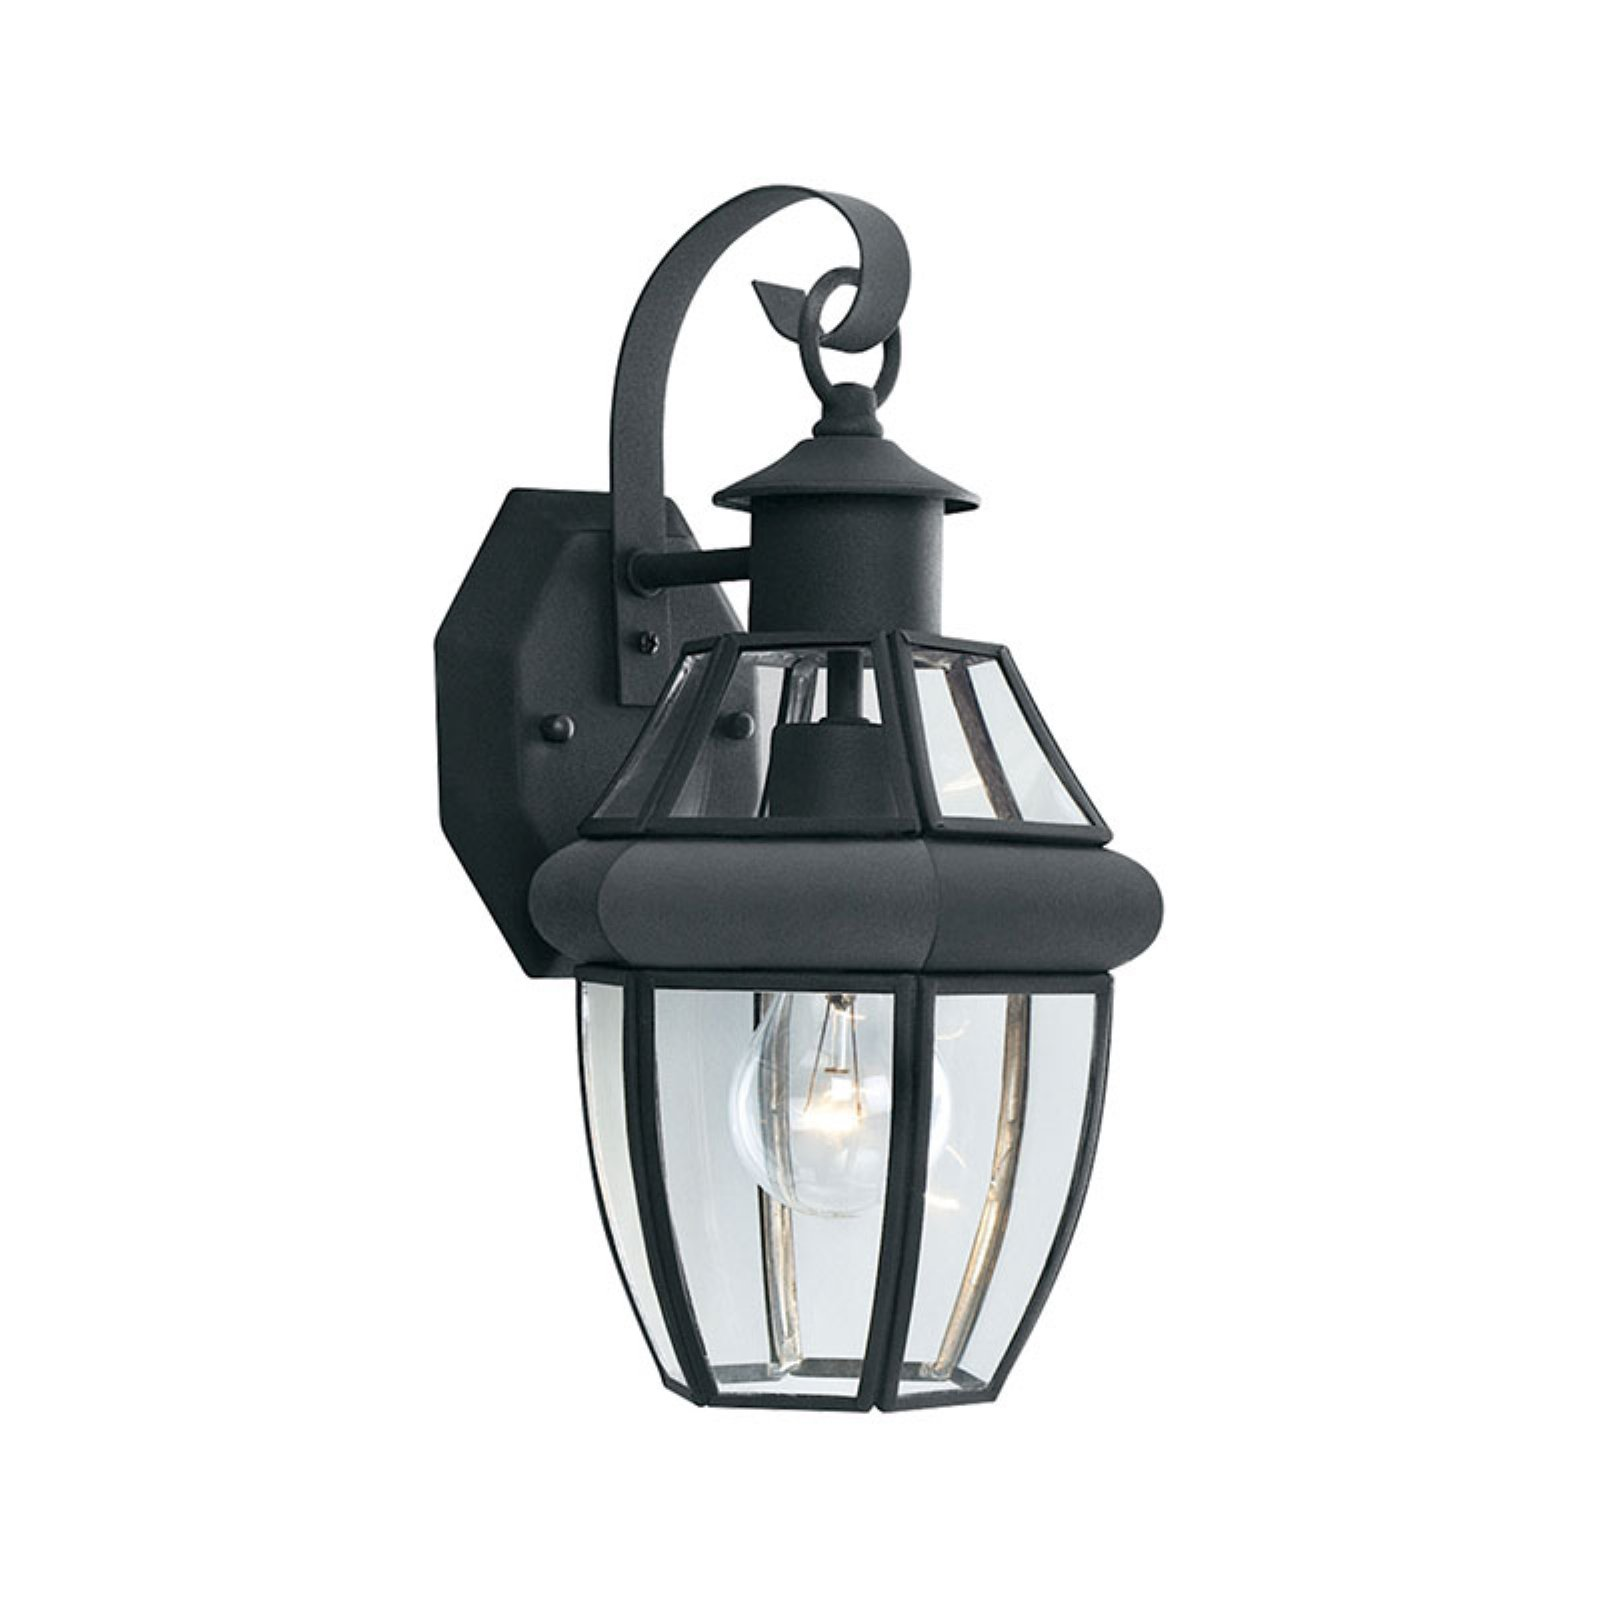 Thomas Lighting Heritage Armed Outdoor Wall Lantern by ELK